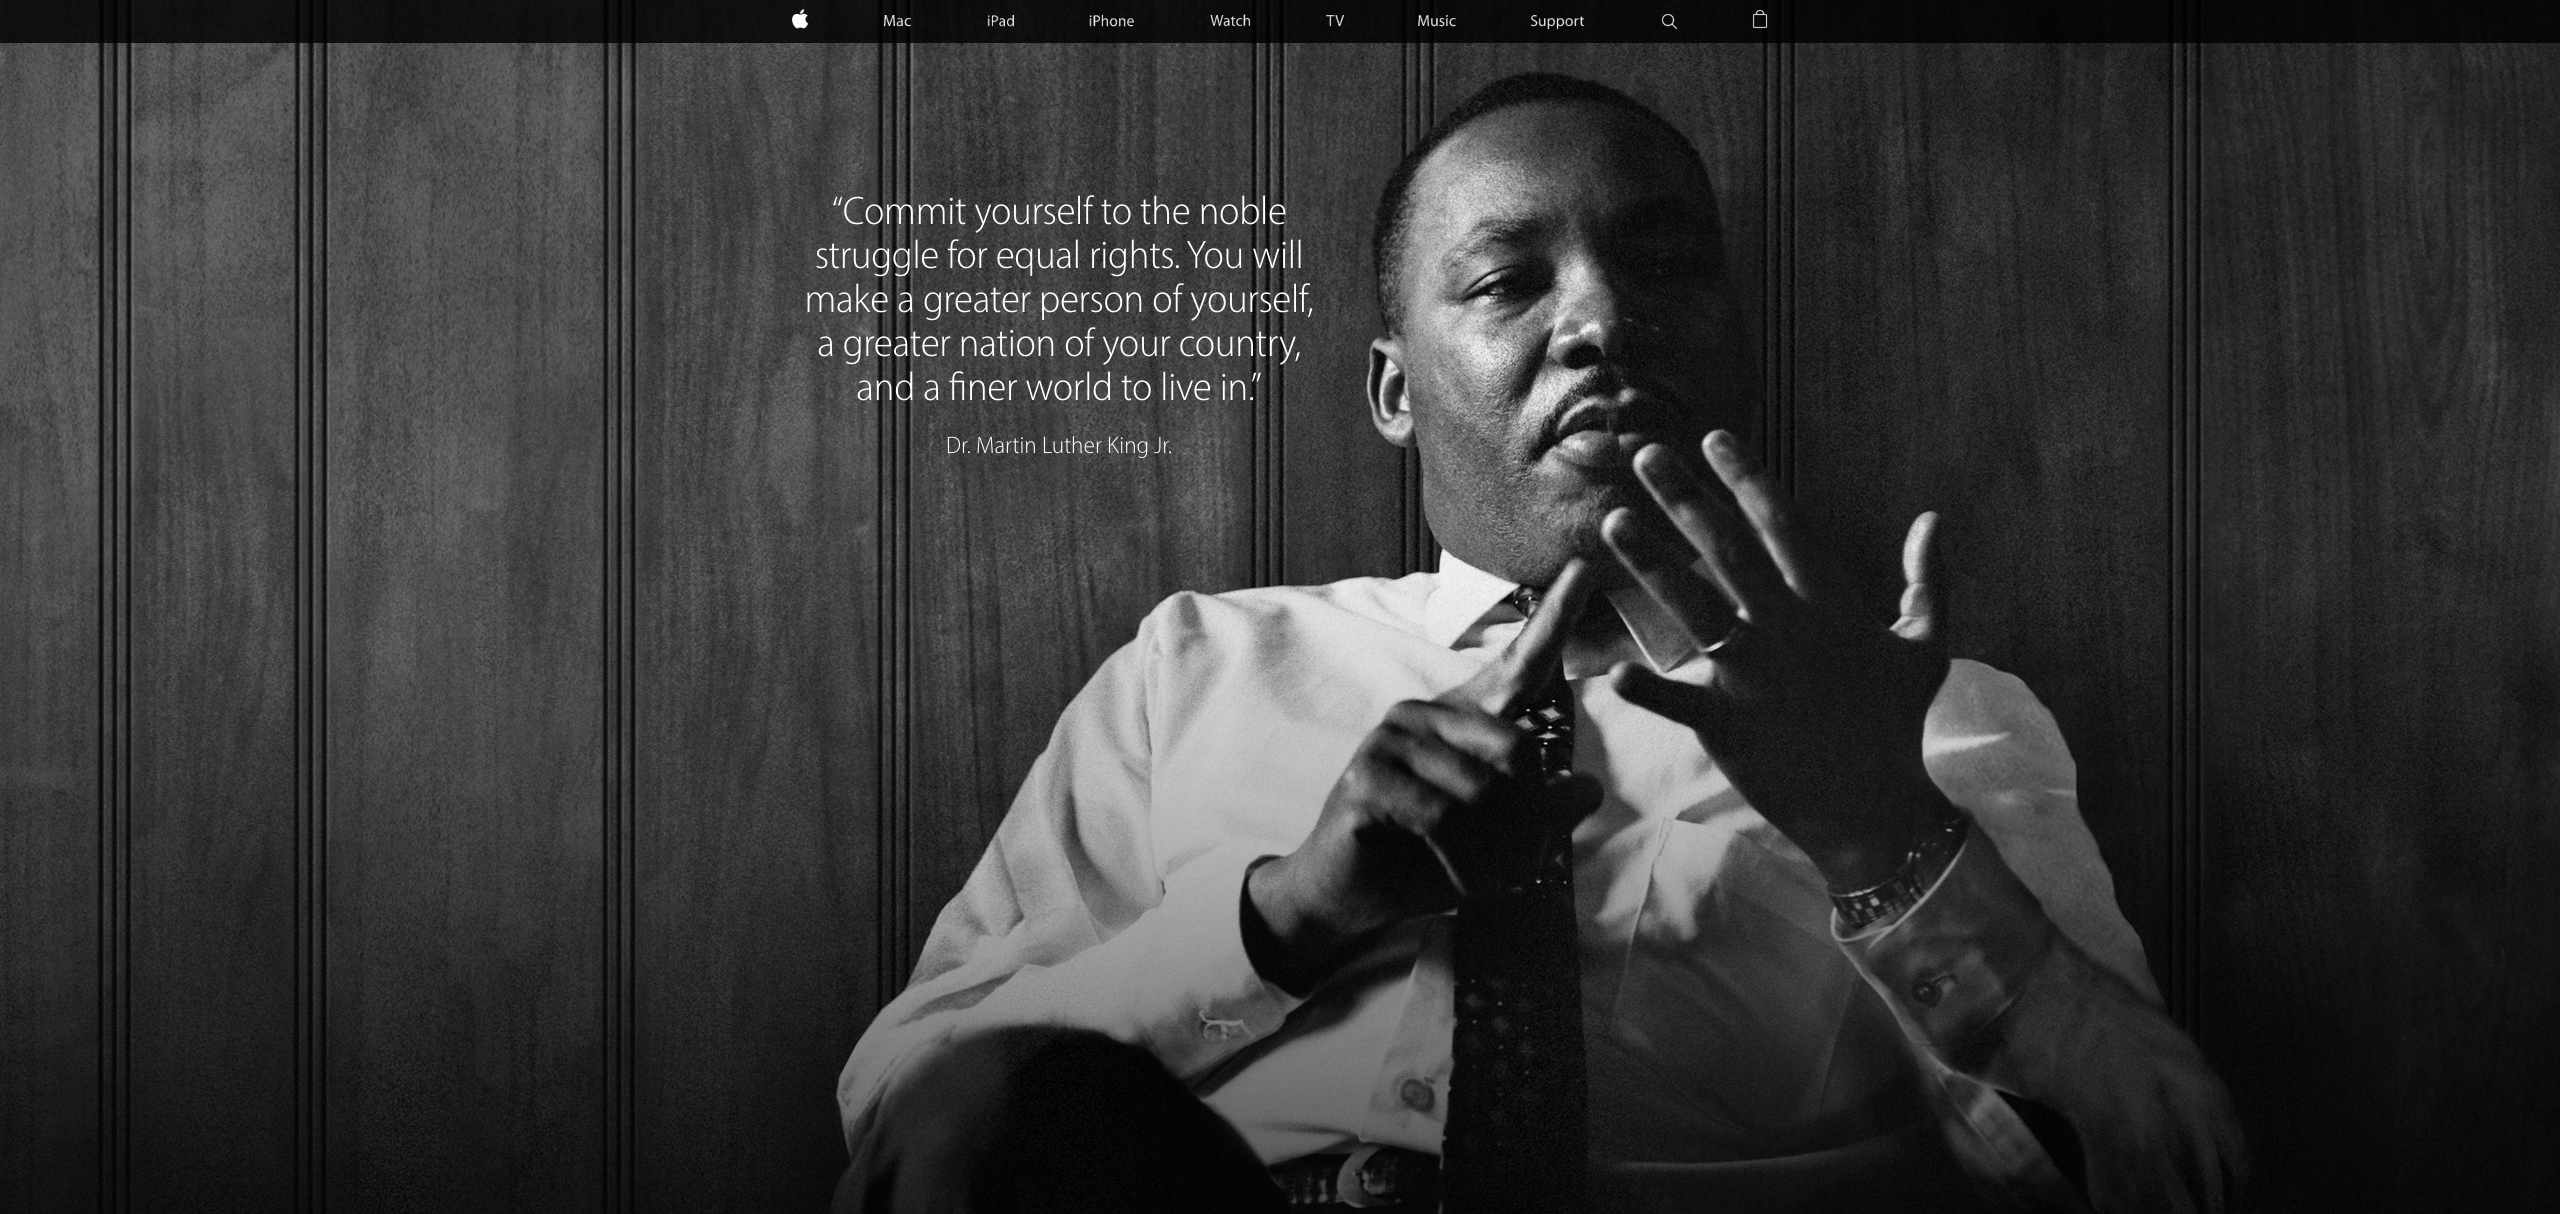 apple store us matin luther king Apple rend hommage à Martin Luther King sur lApple Store US